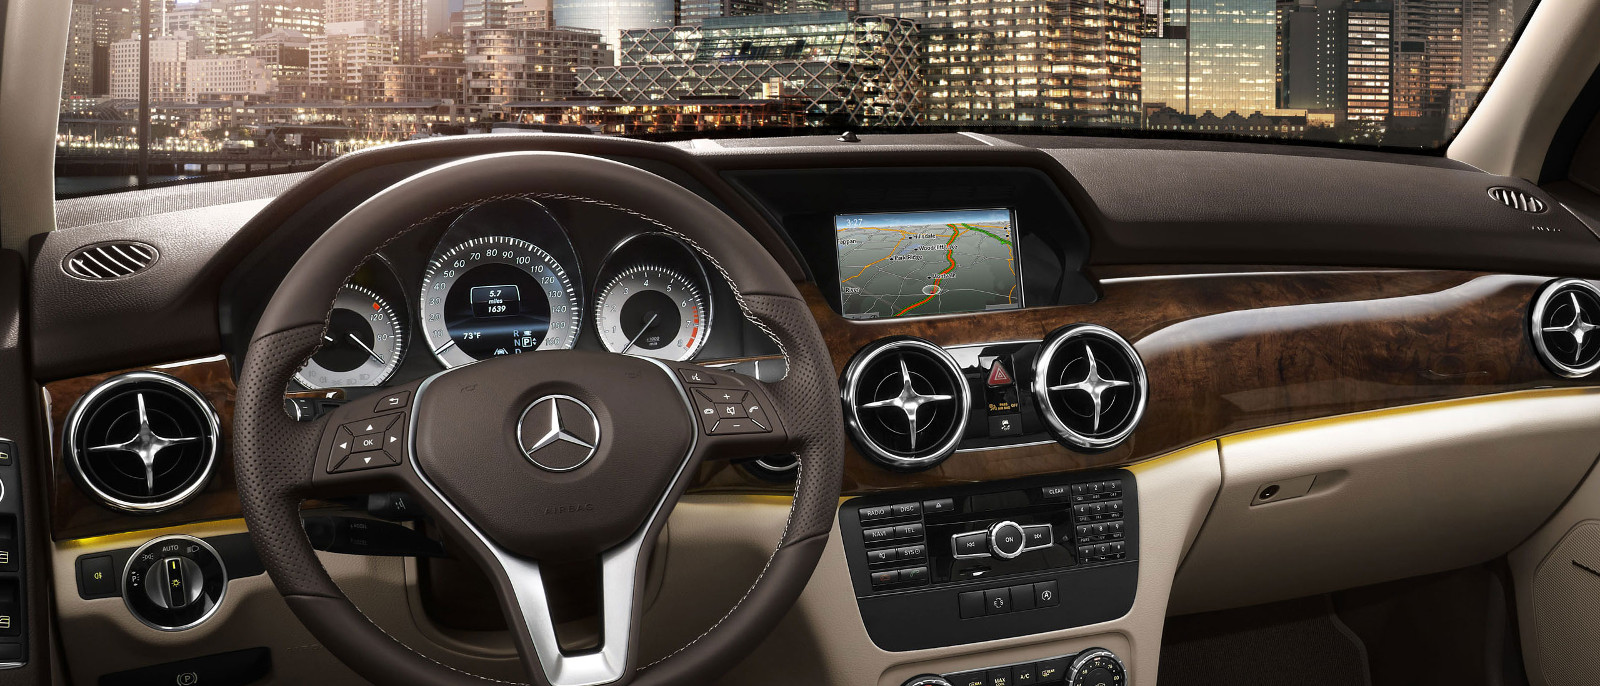 2015 Mercedes-Benz GLK Interior